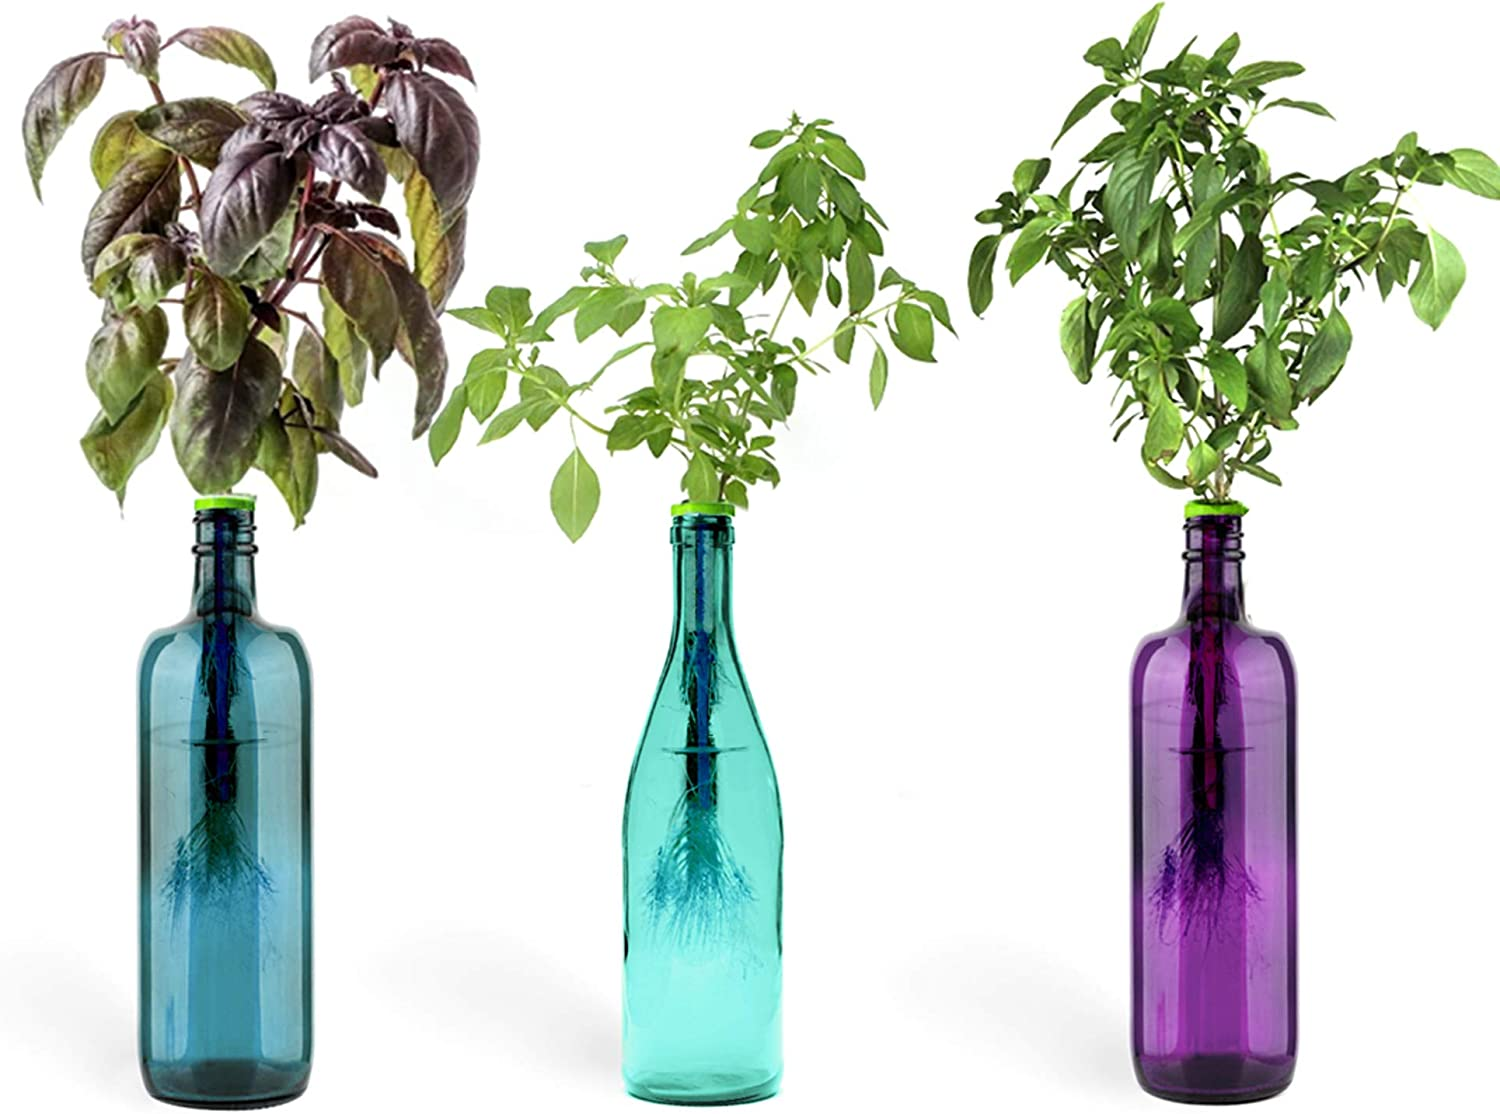 Urban Leaf - Windowsill Herb Garden Starter Kit - Self Watering Indoor Bottle Garden Kit - incl 3 Types Herb/Flower Seeds - Perfect Unique Gift for Her (or Him!)